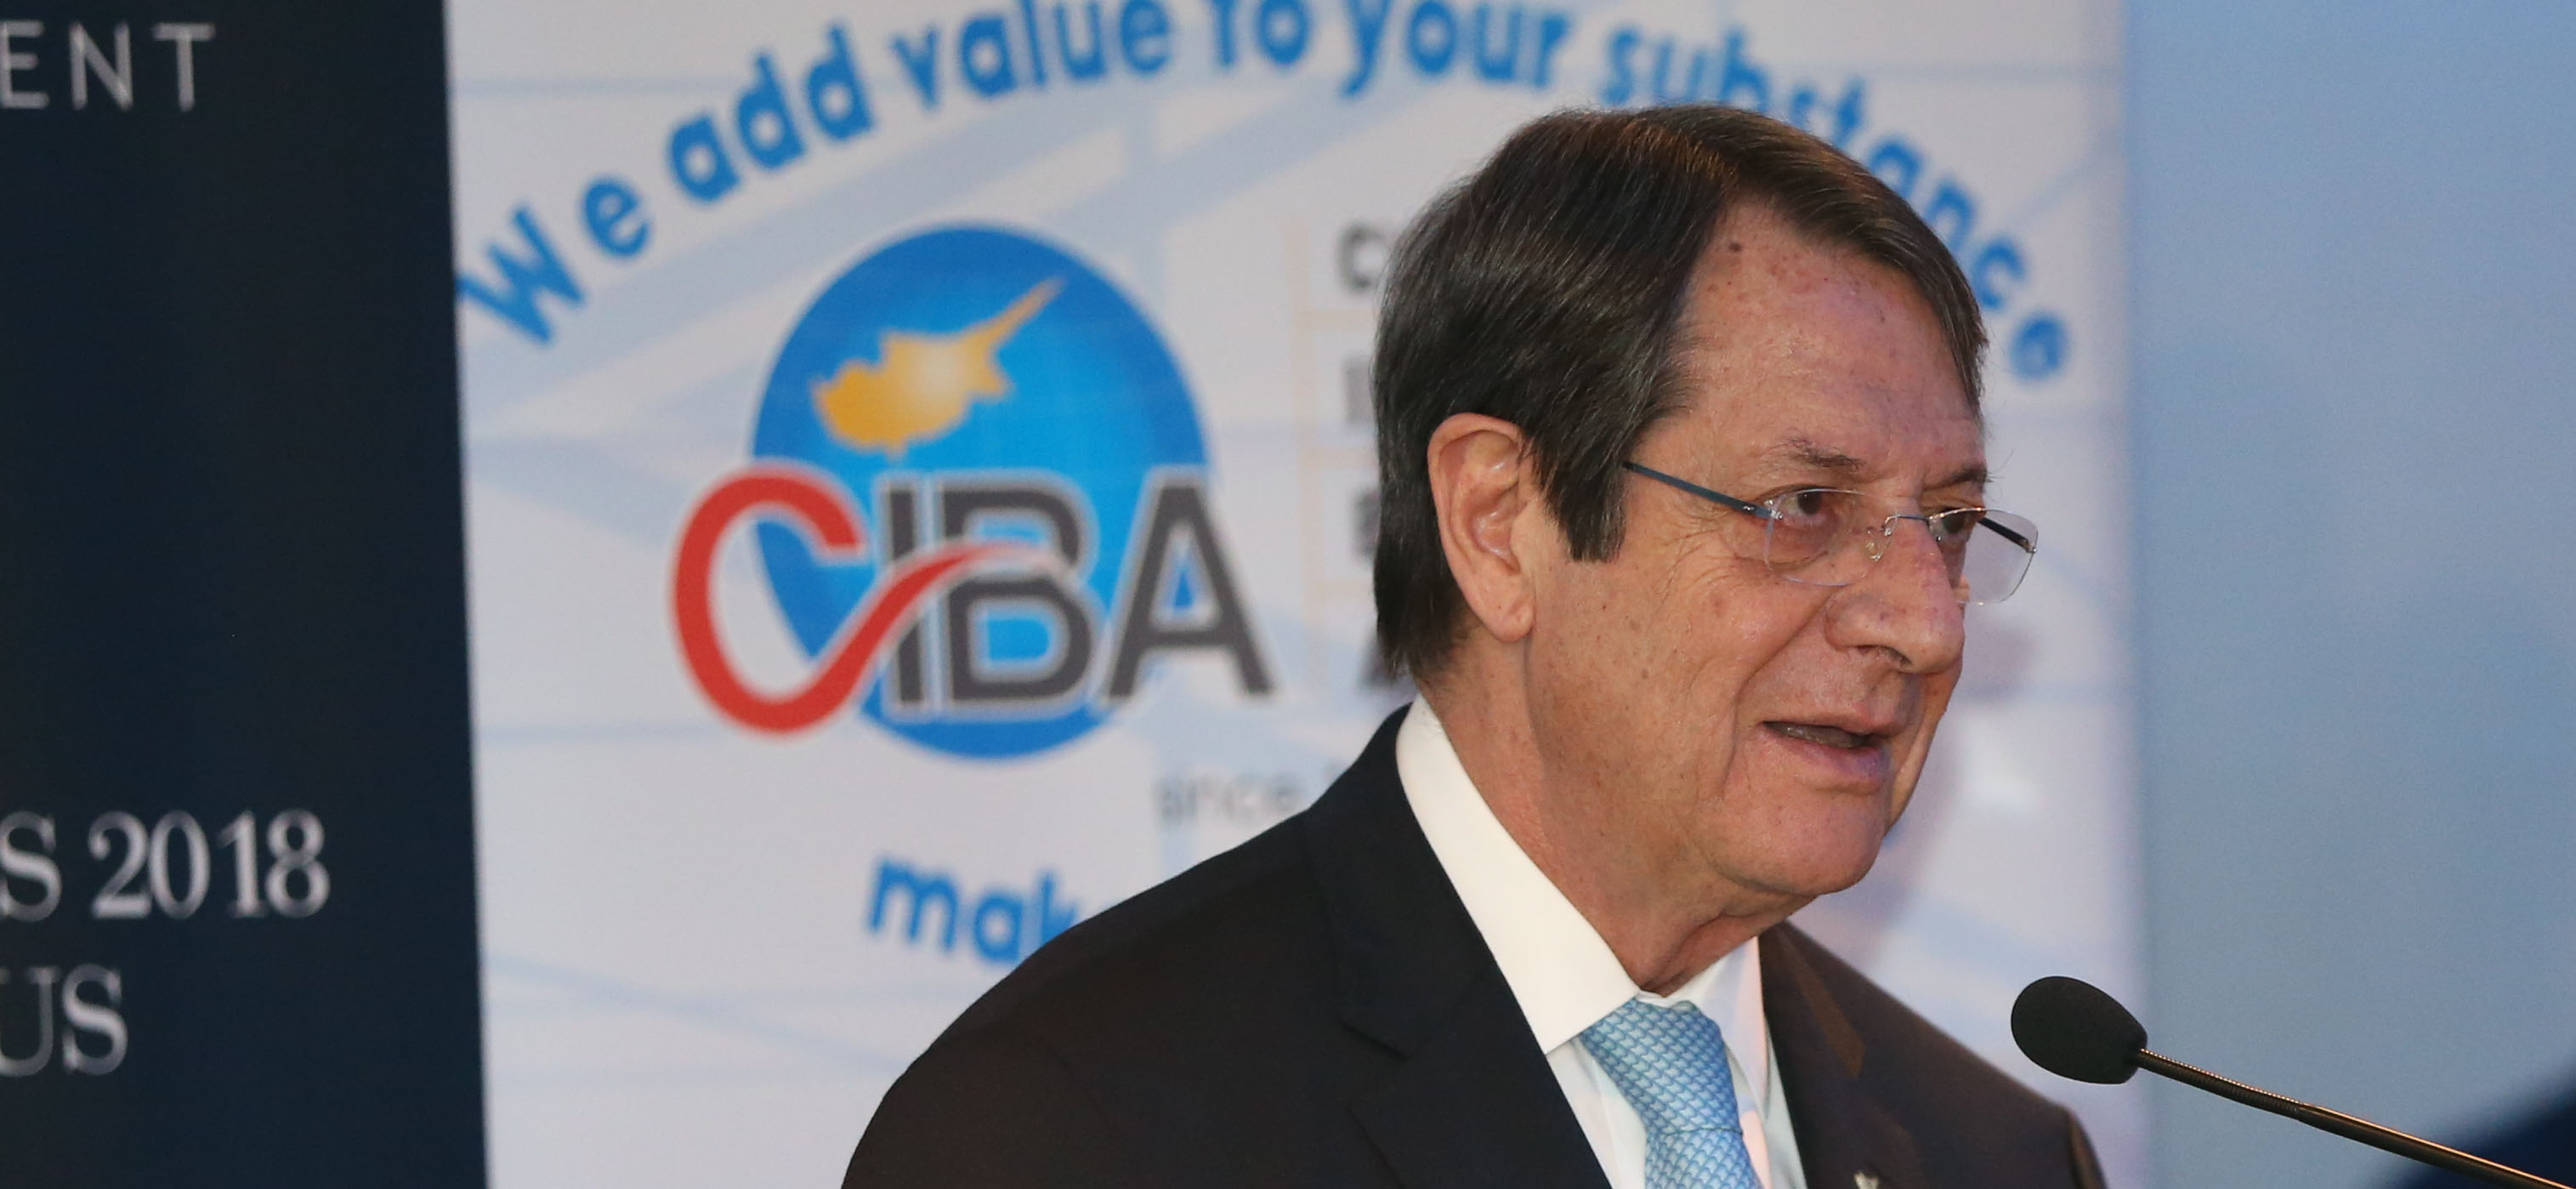 President Anastasiades attended the annual General Assembly of the Cyprus International Business Association (CIBA)